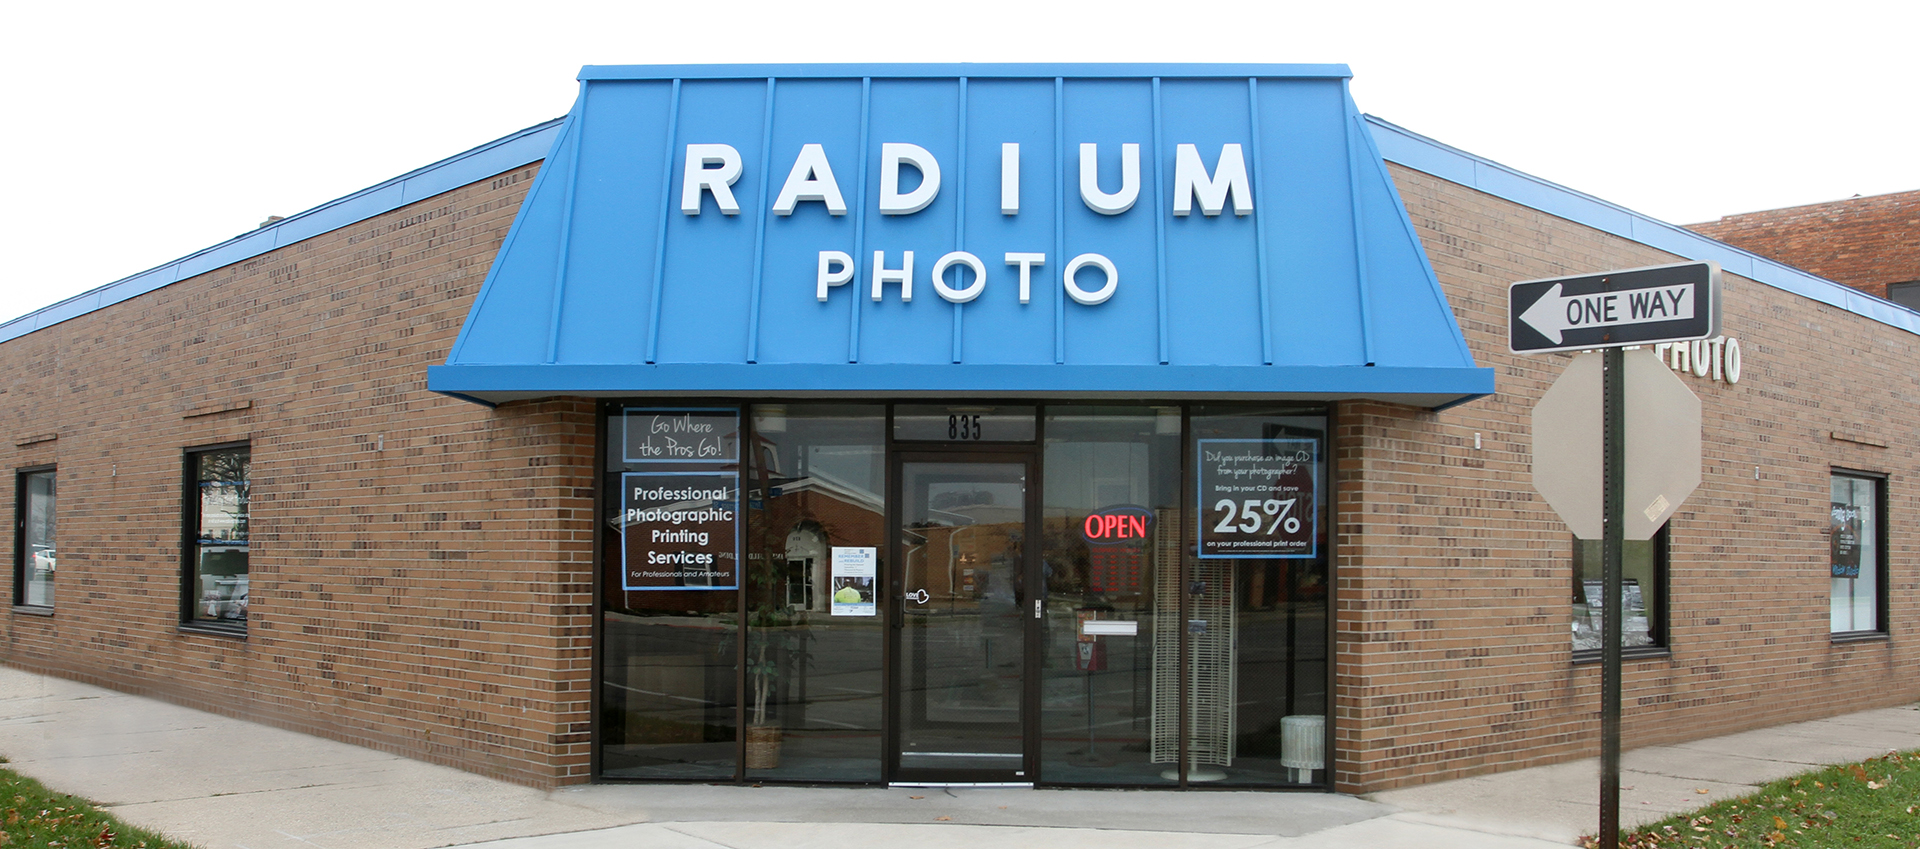 radium photo store picture 1920X849